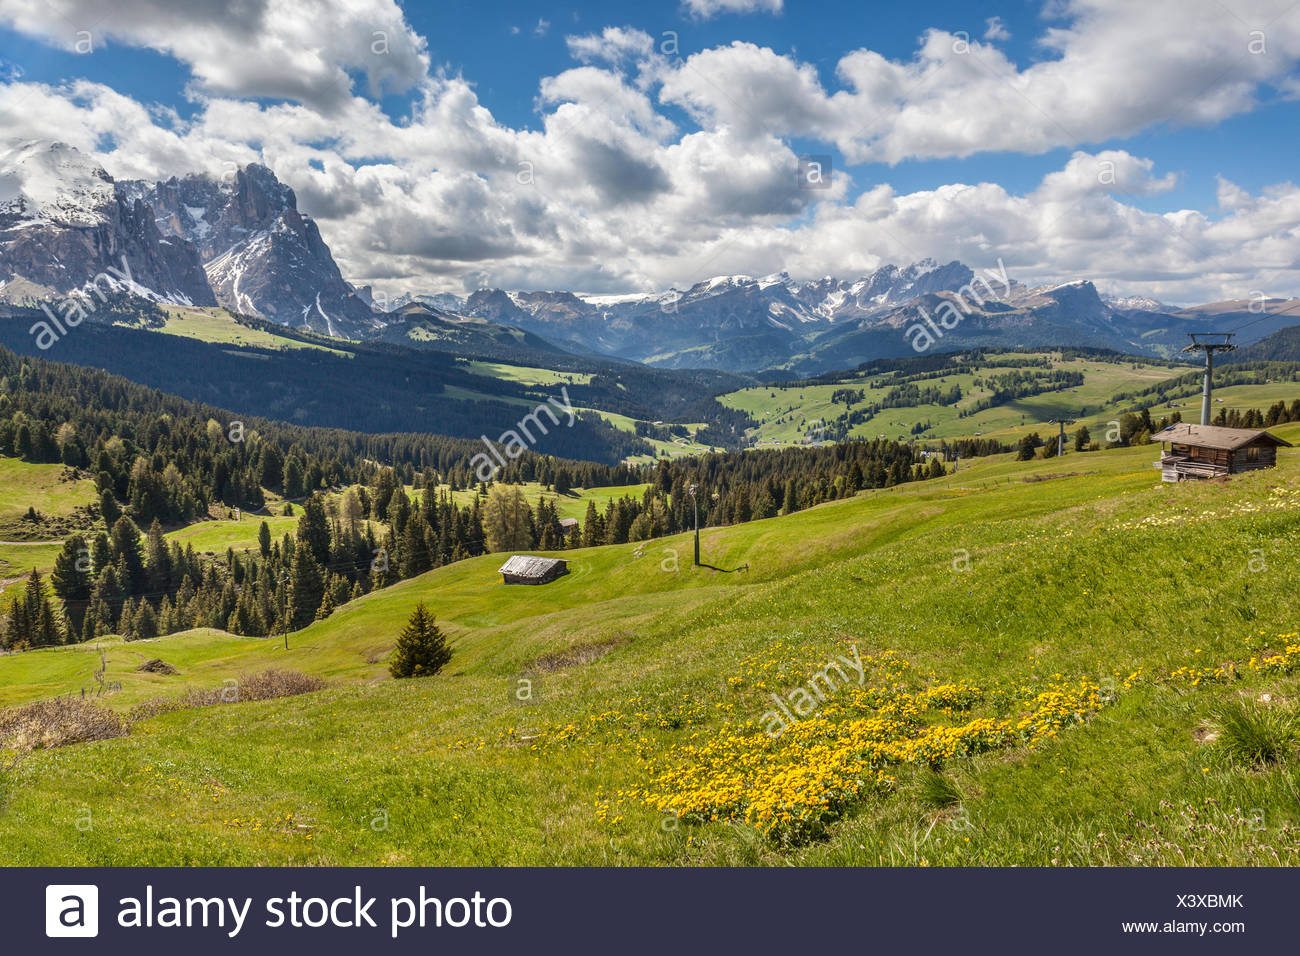 geography / travel, Italy, South Tyrol, Alm on the Seiser mountain pasture, Additional-Rights-Clearance-Info-Not-Available - Stock Image